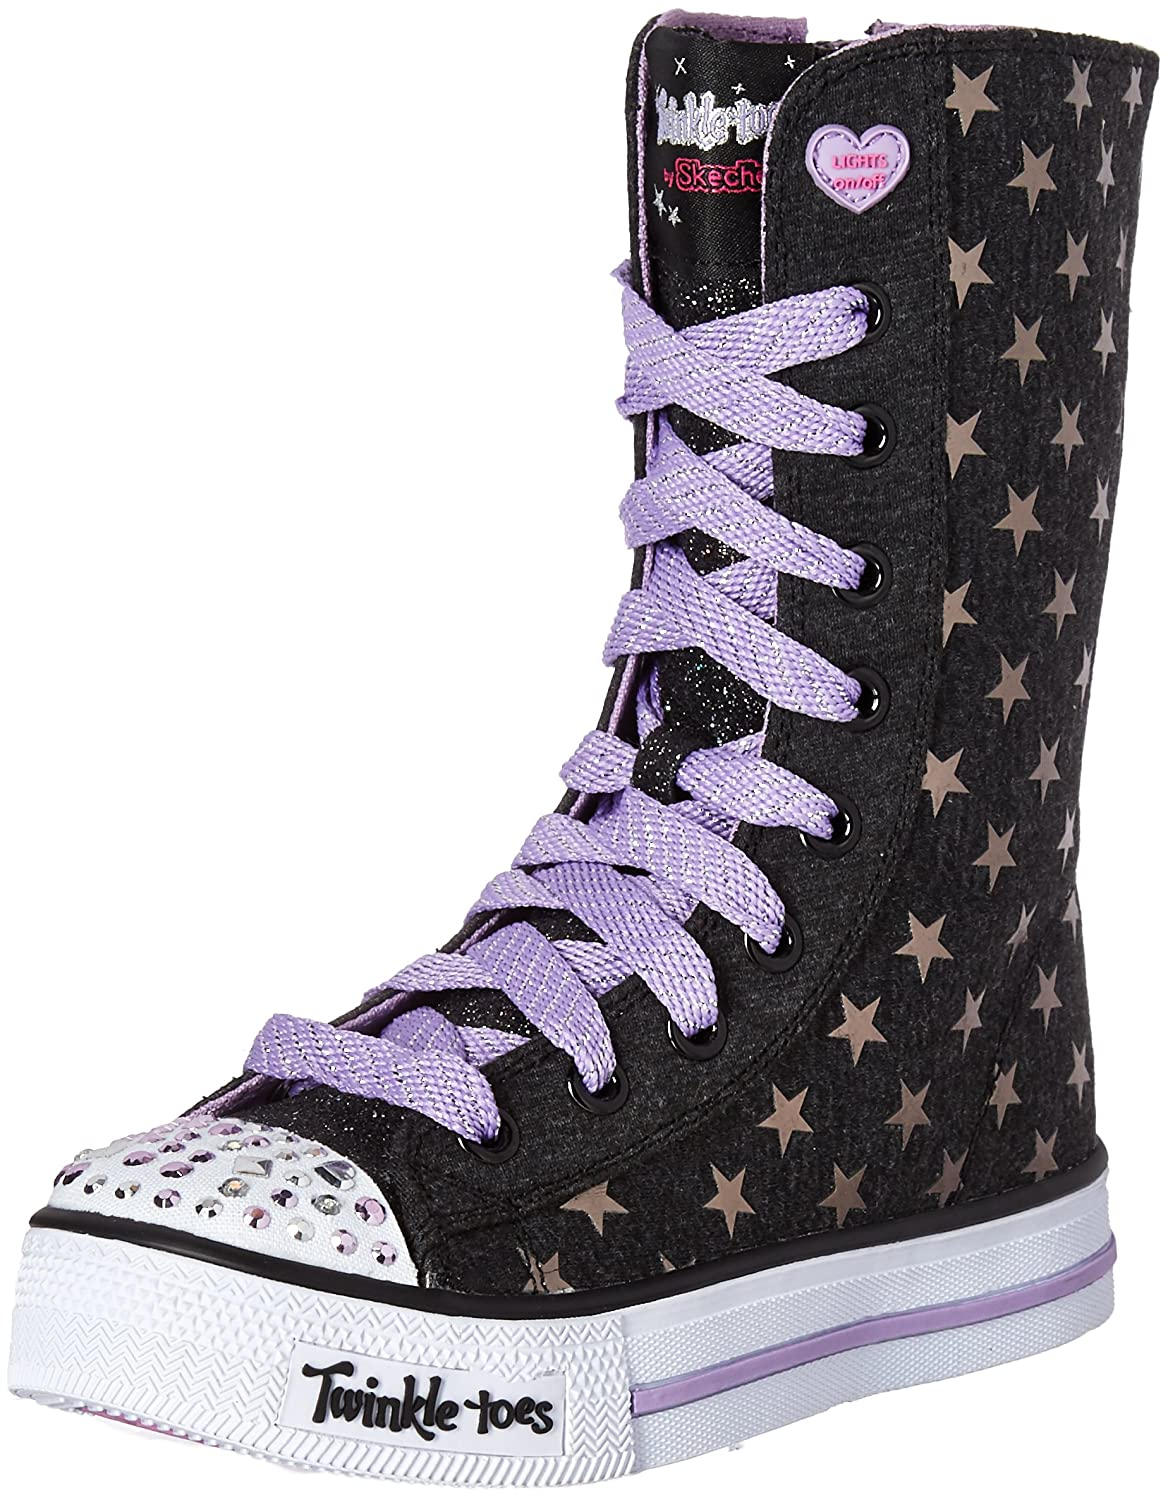 Skechers Kids Twinkle Toes Shuffles Tall High Top Light-Up Sneaker Twinkle Toes - Shuffles - K